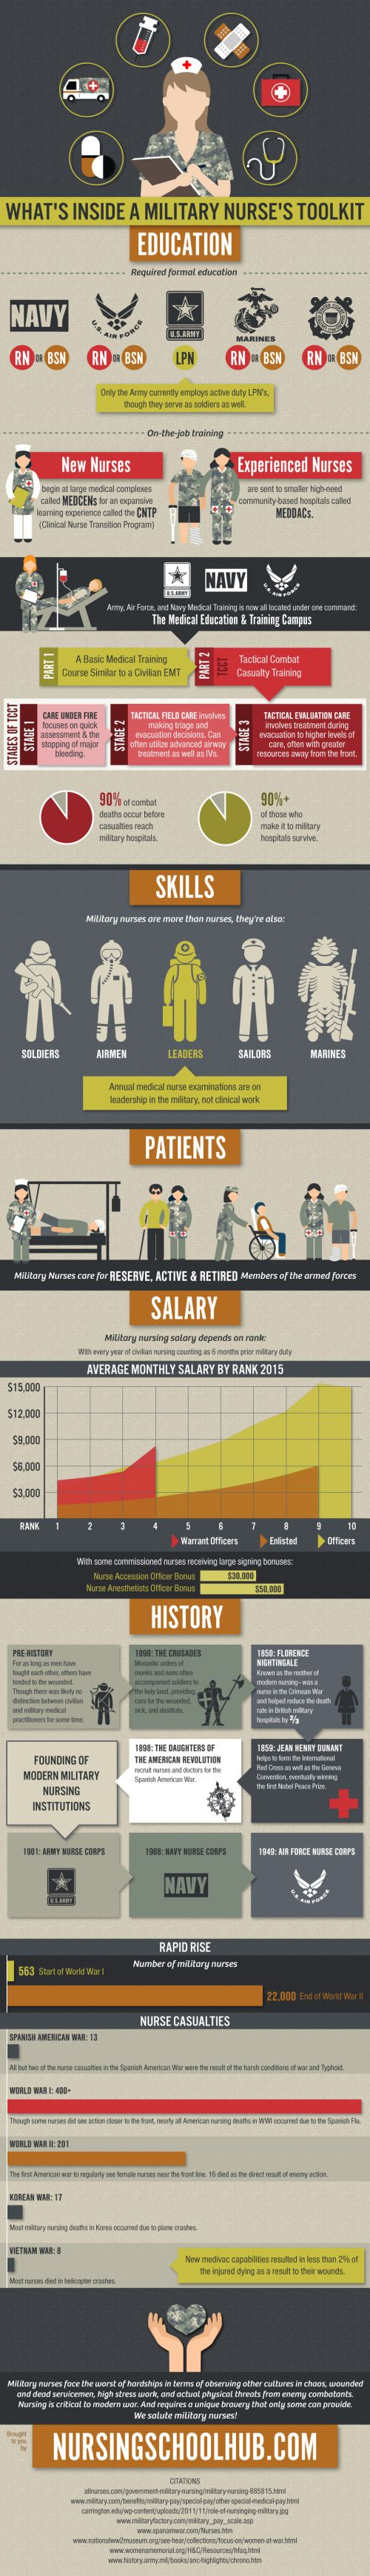 Have you ever wondered about being a nurse in the military? this answers ALL your questions